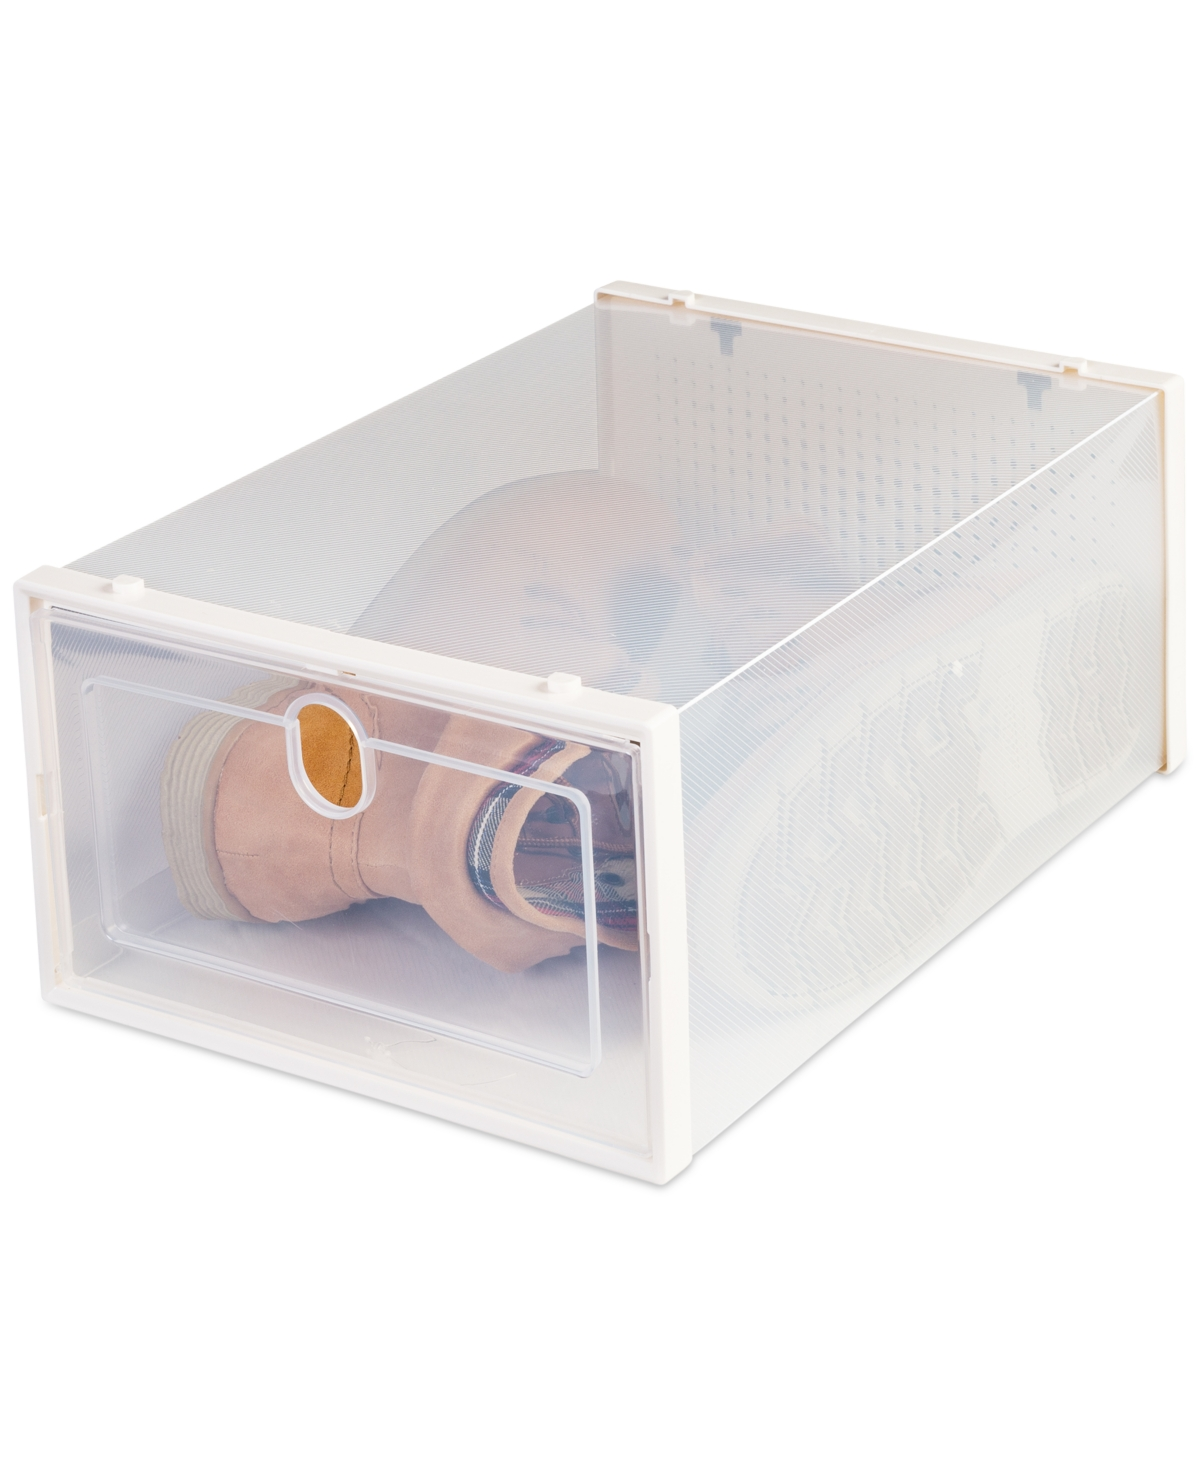 Honey Can Do Stackable Plastic Shoe Box Storage Containers, Set of 6